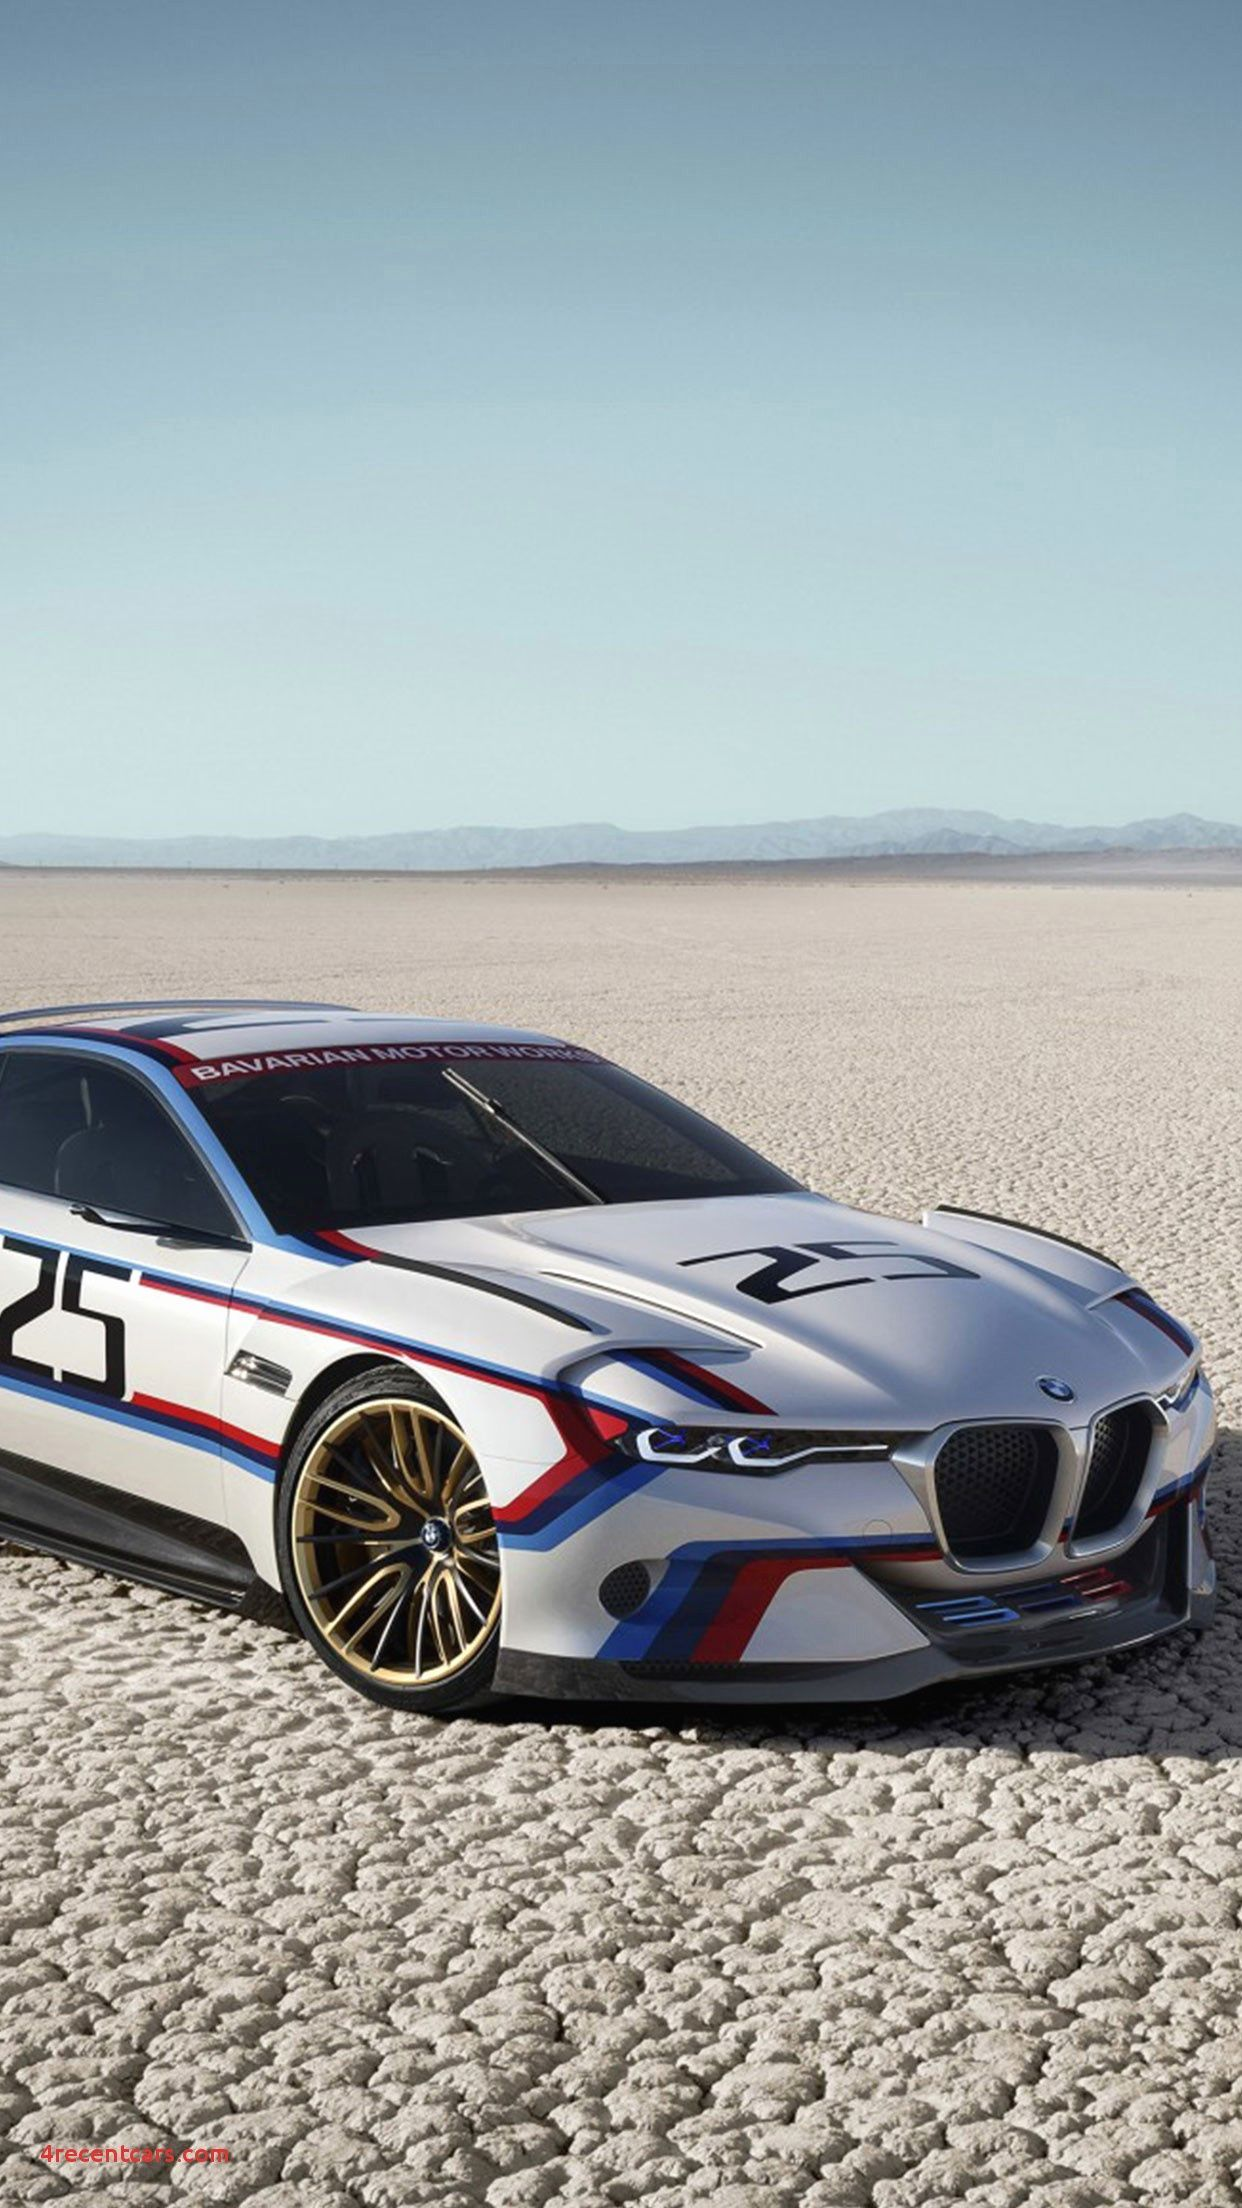 1242x2208 Bmw M iPhone Wallpaper Hd Elegant Wallpapers for iPhone New iPhone 6 ...